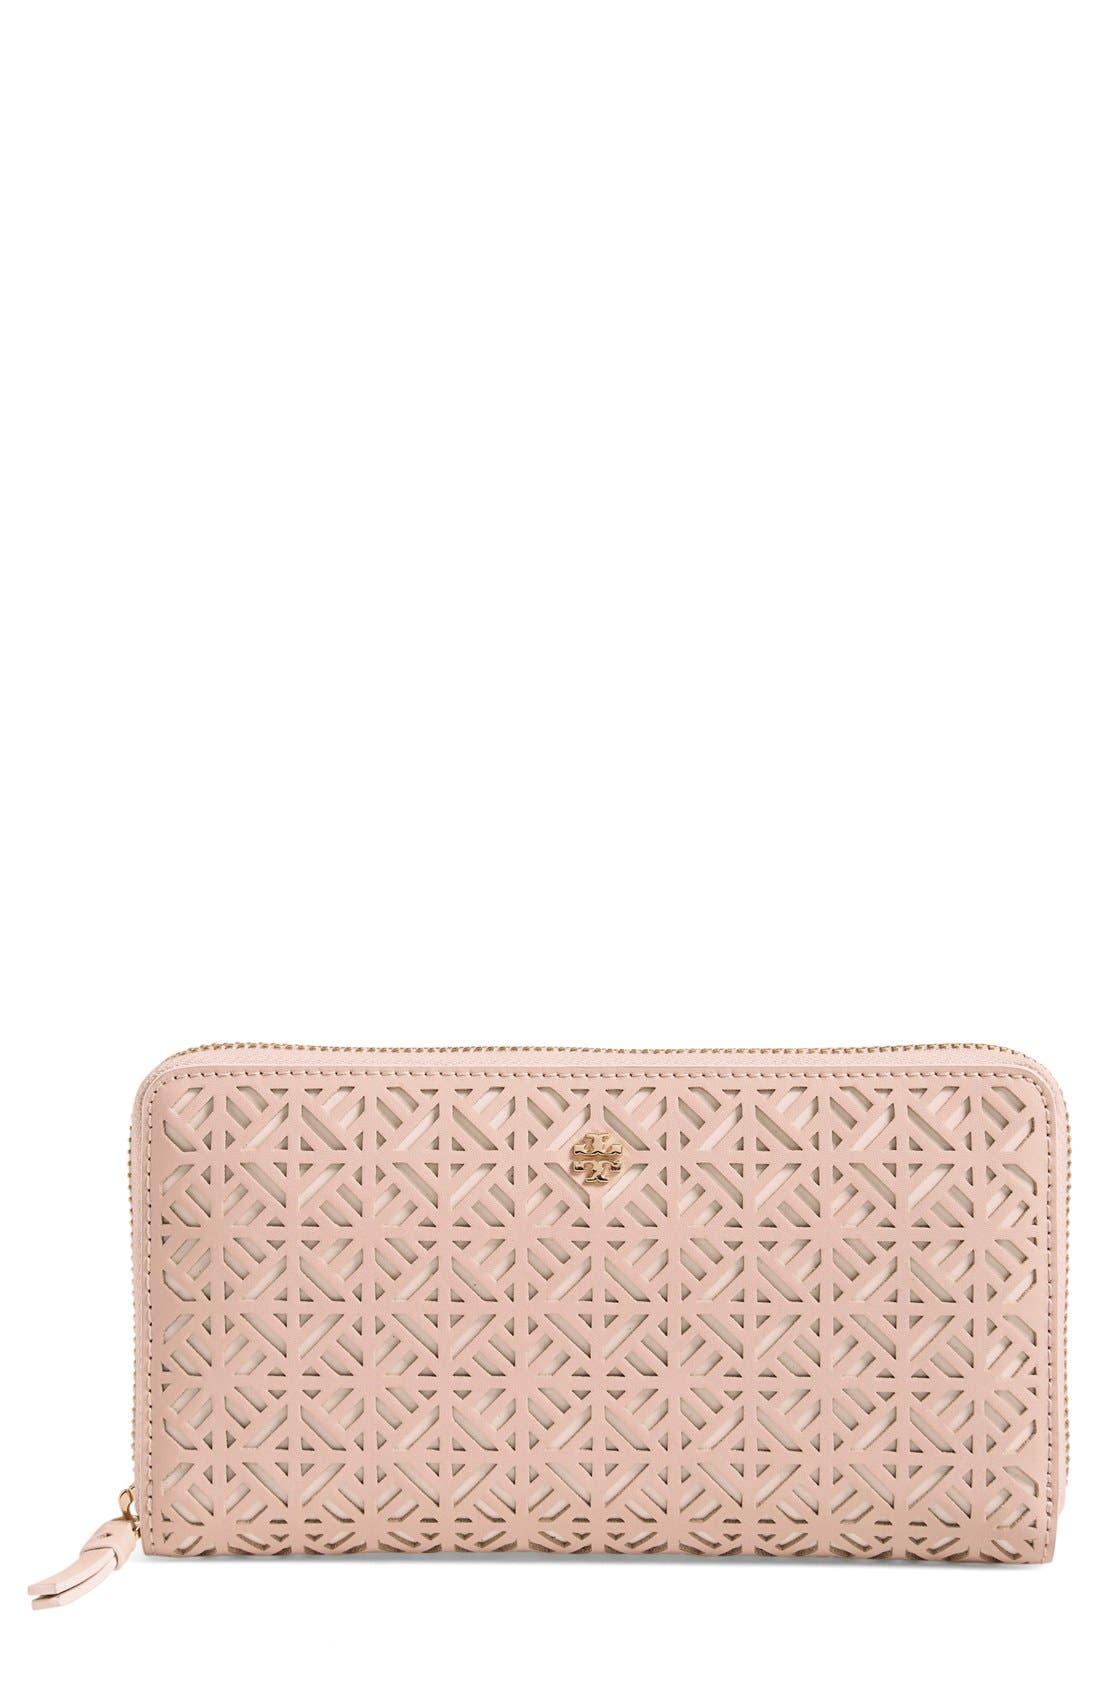 Main Image - Tory Burch 'Fret-T' Zip Continental Wallet